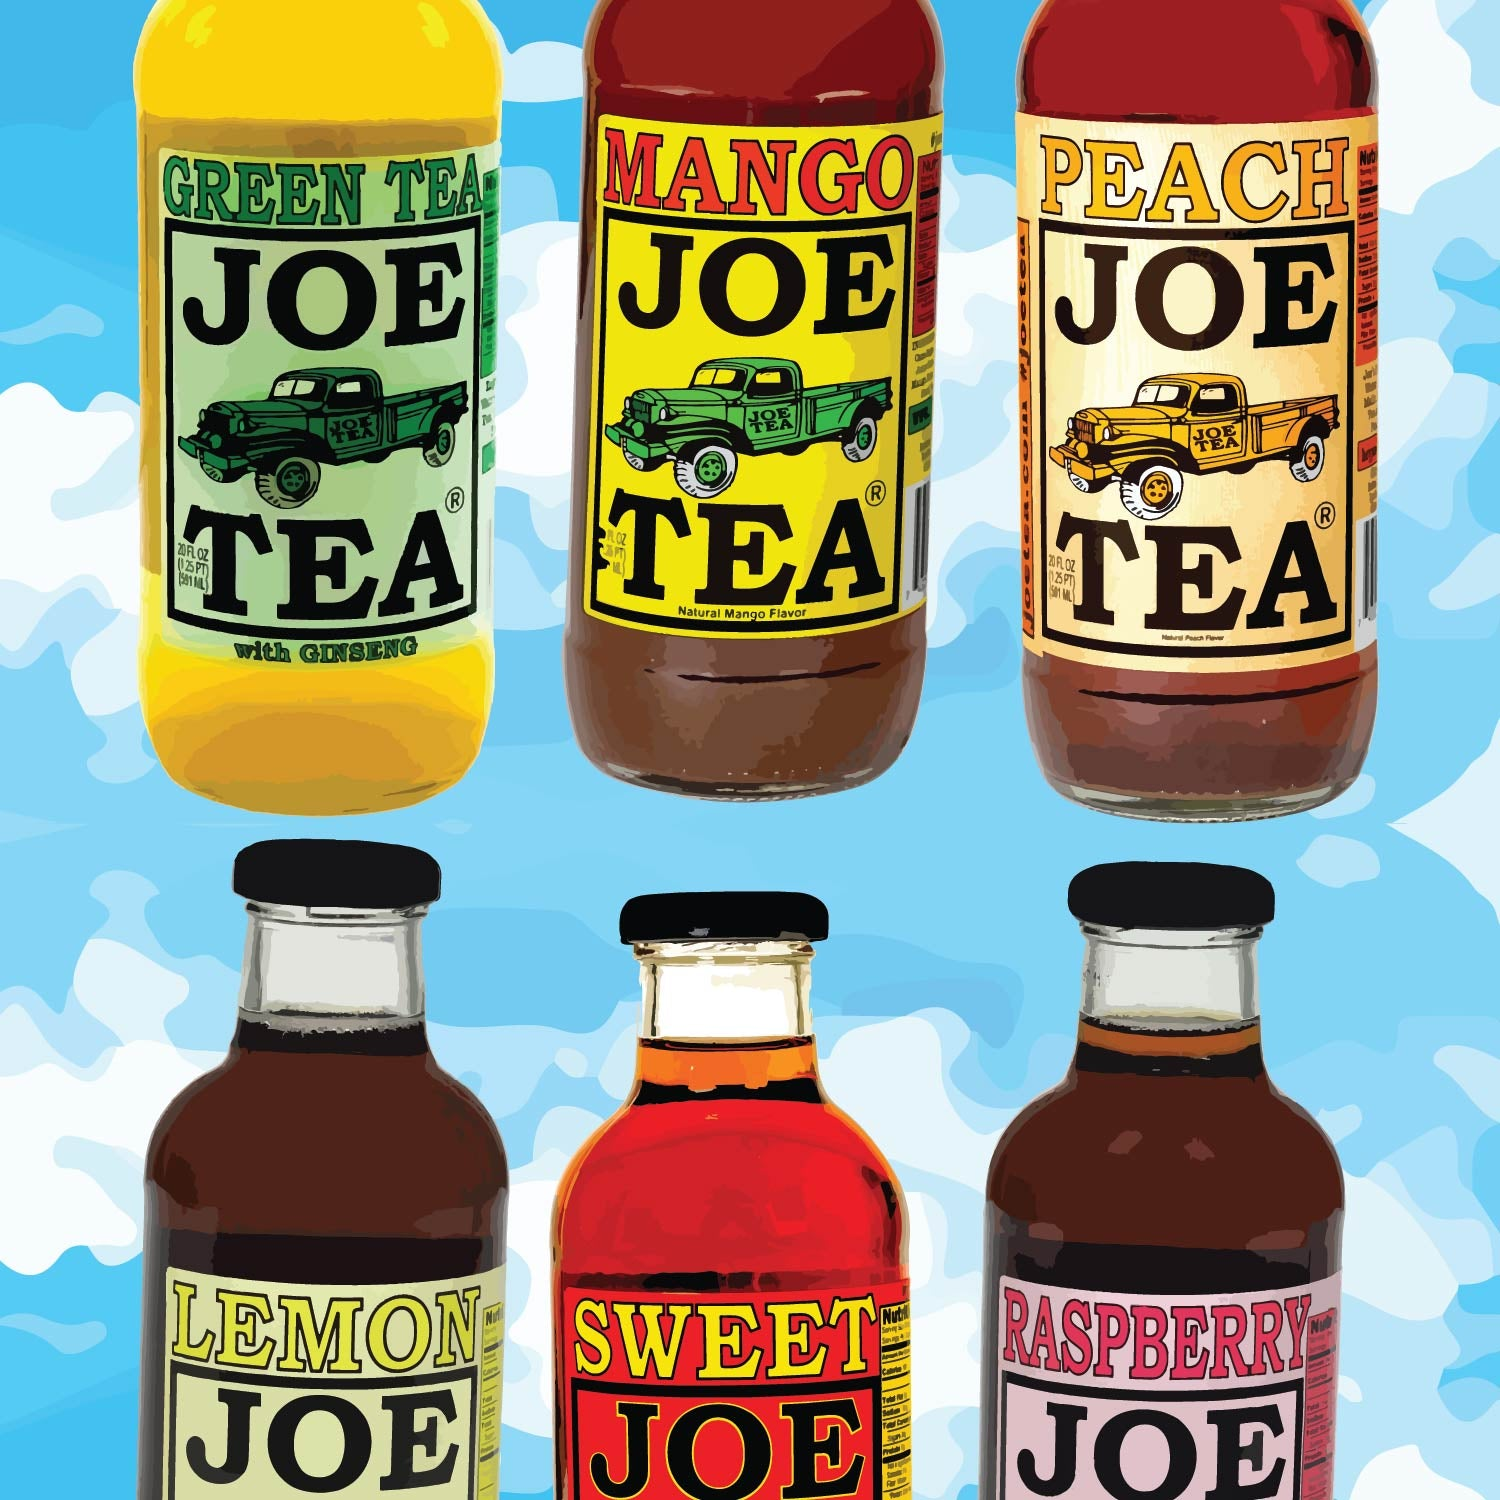 JOE TEA and Lemonade 20 oz - 4 Bottles per flavor